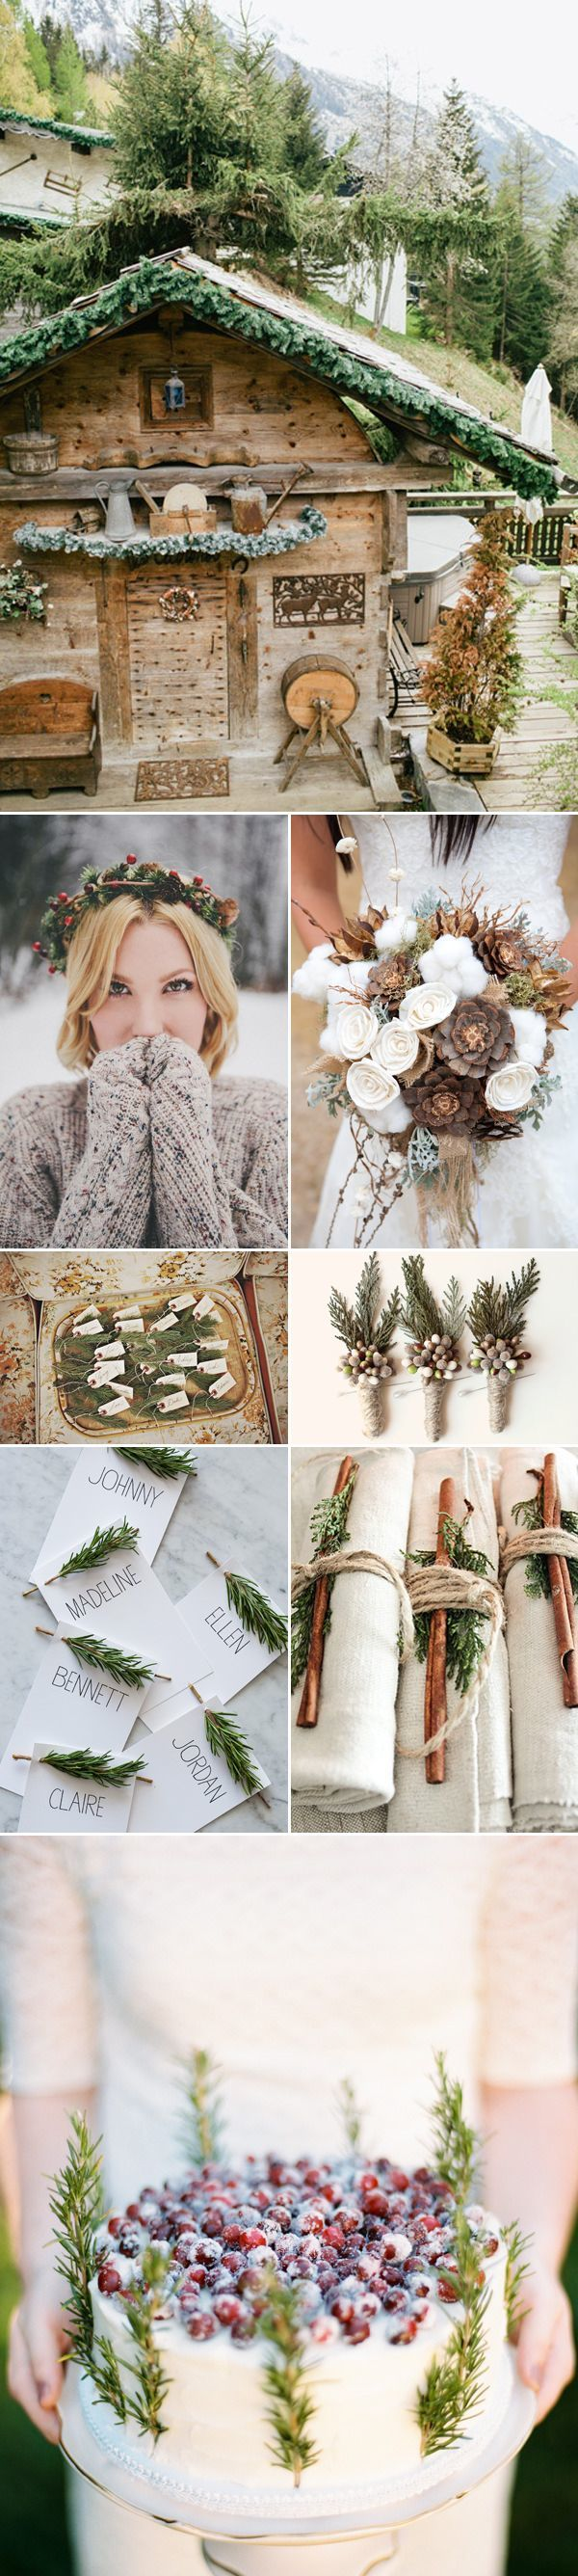 winter-wedding-ideas-vintage-winter-wedding-7